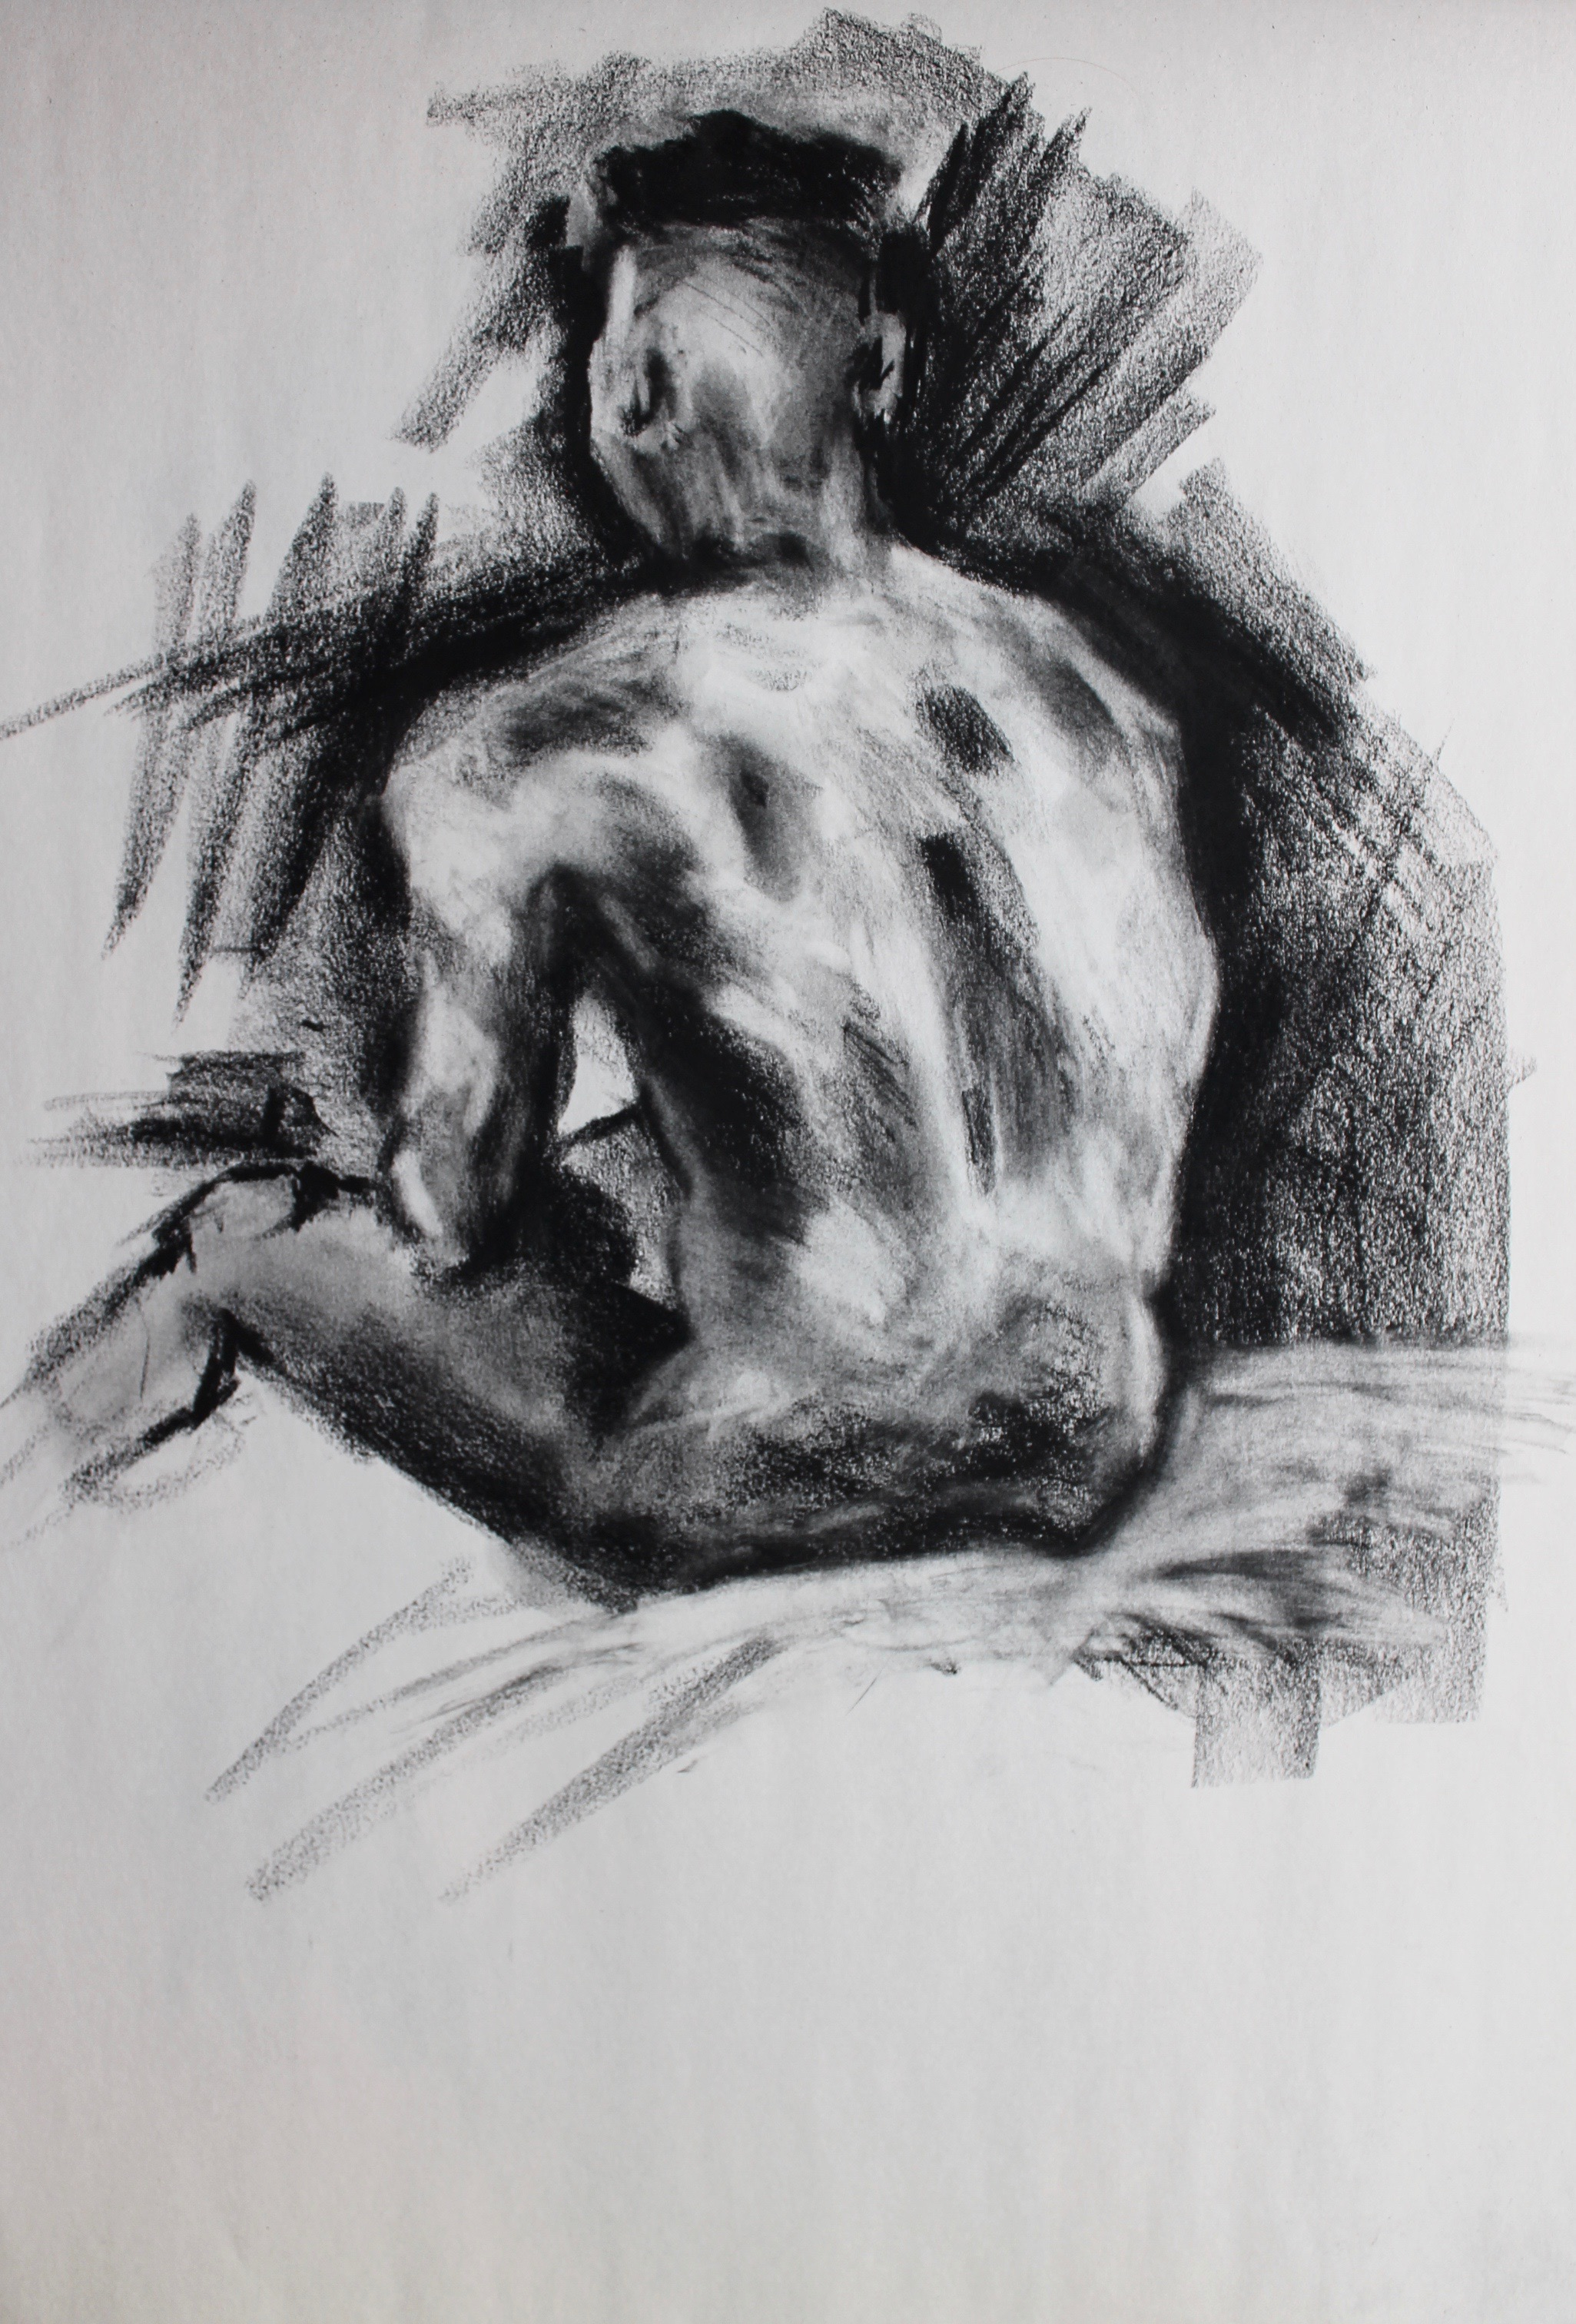 - compressed charcoal on newsprint,2017